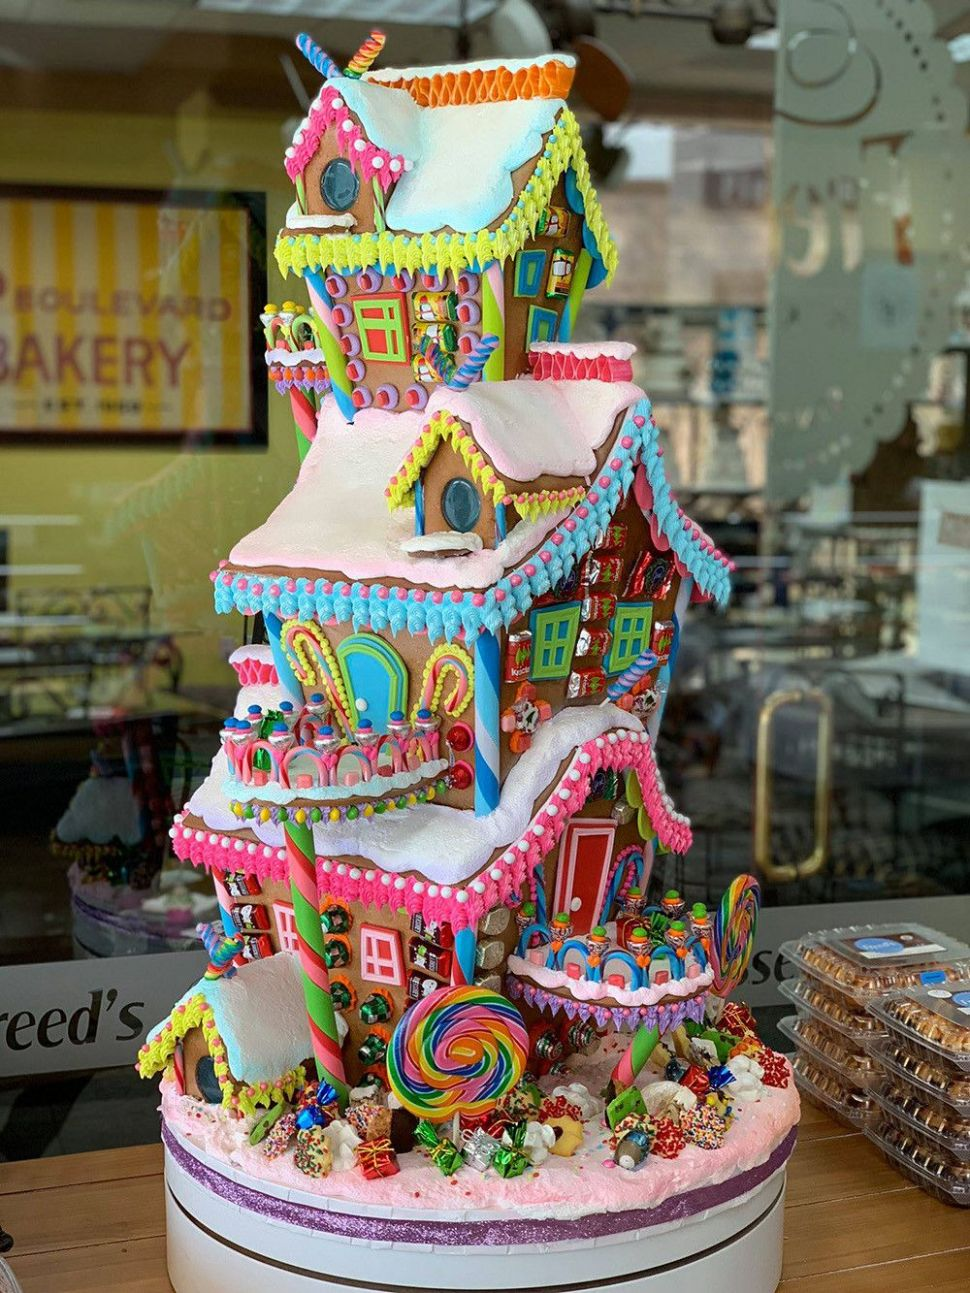 Gingerbread House Inspiration (Top 9 | Gingerbread, Gingerbread ...